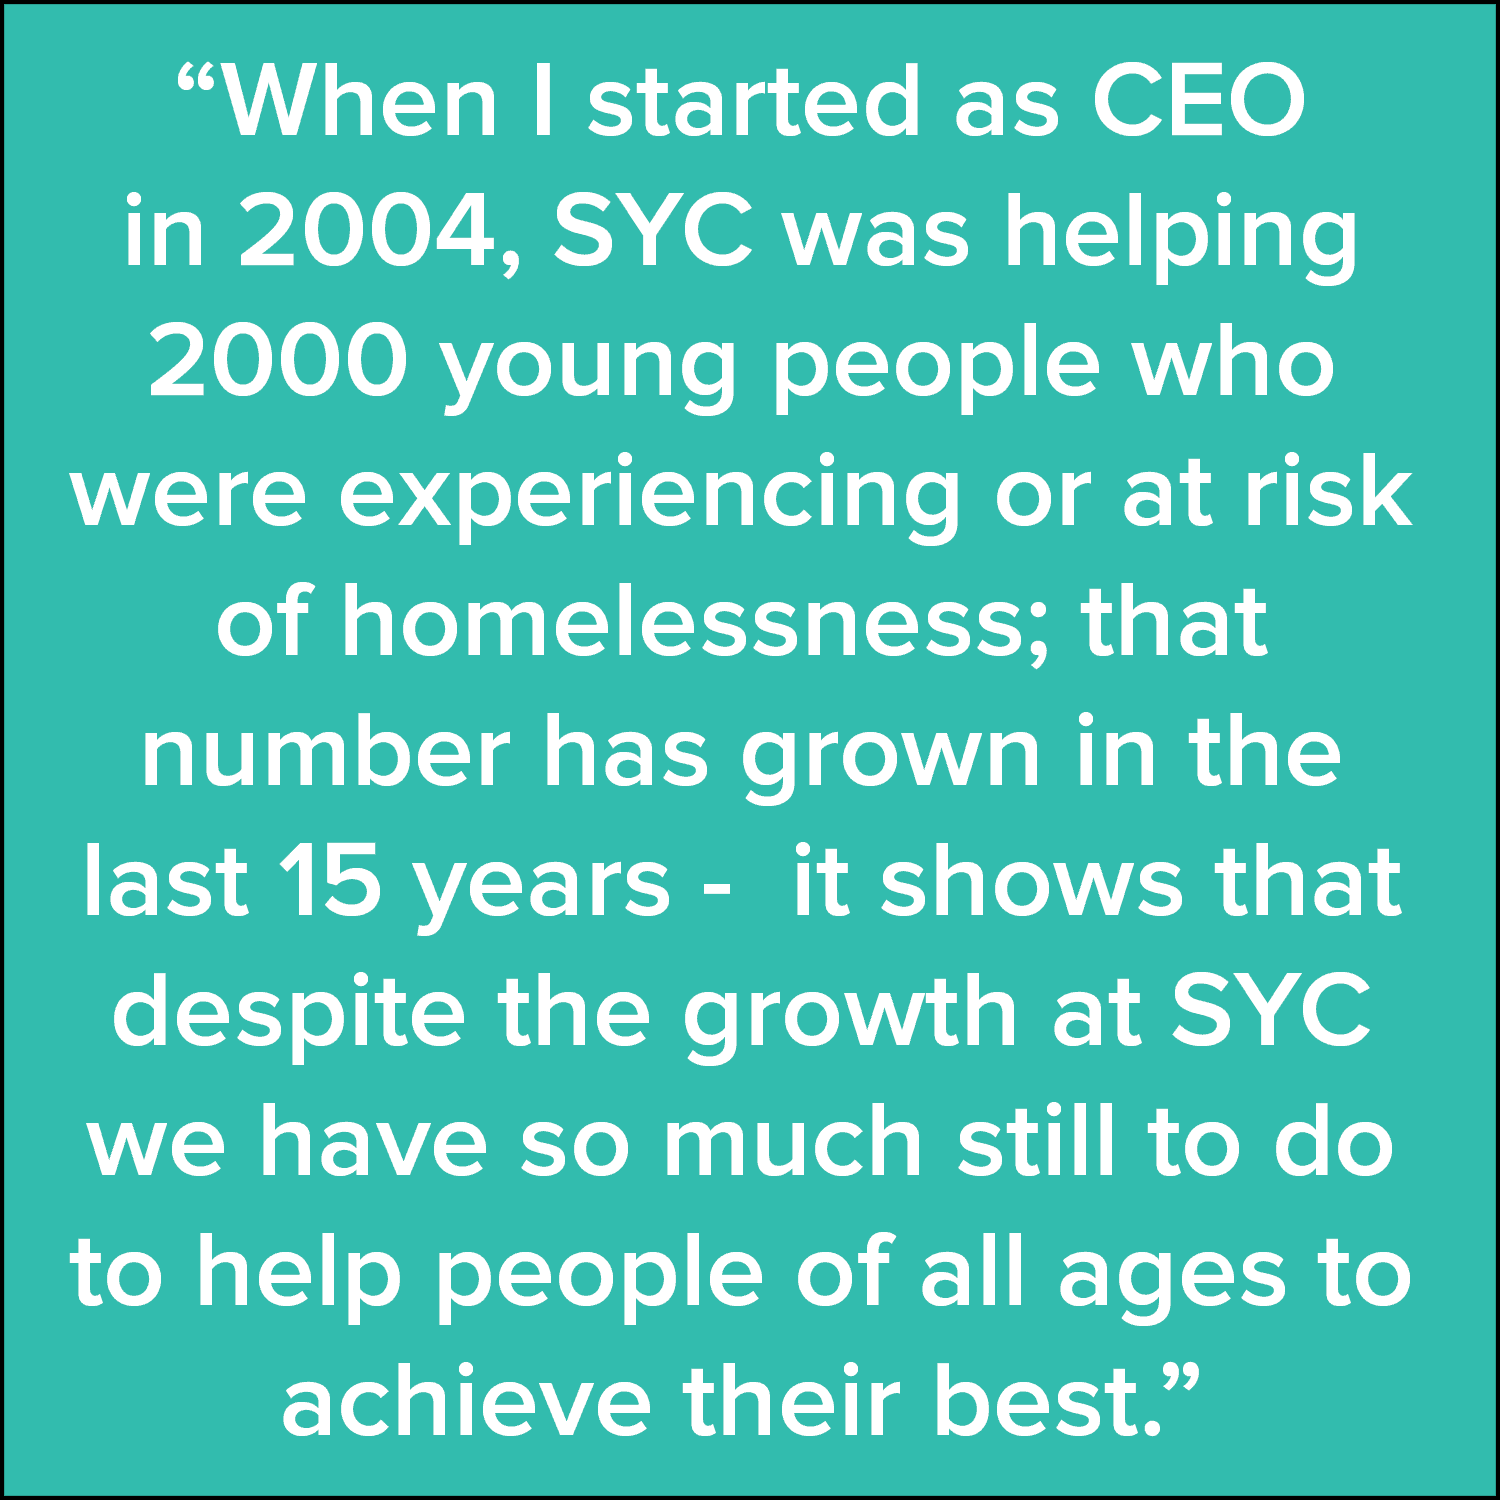 """When I started as CEO in 2004, SYC was helping 2000 young people who were experiencing or at risk of homelessness; that number has grown in the last 15 years - it shows that despite the growth at SYC we have so much still to do to help people of all ages to achieve their best."""